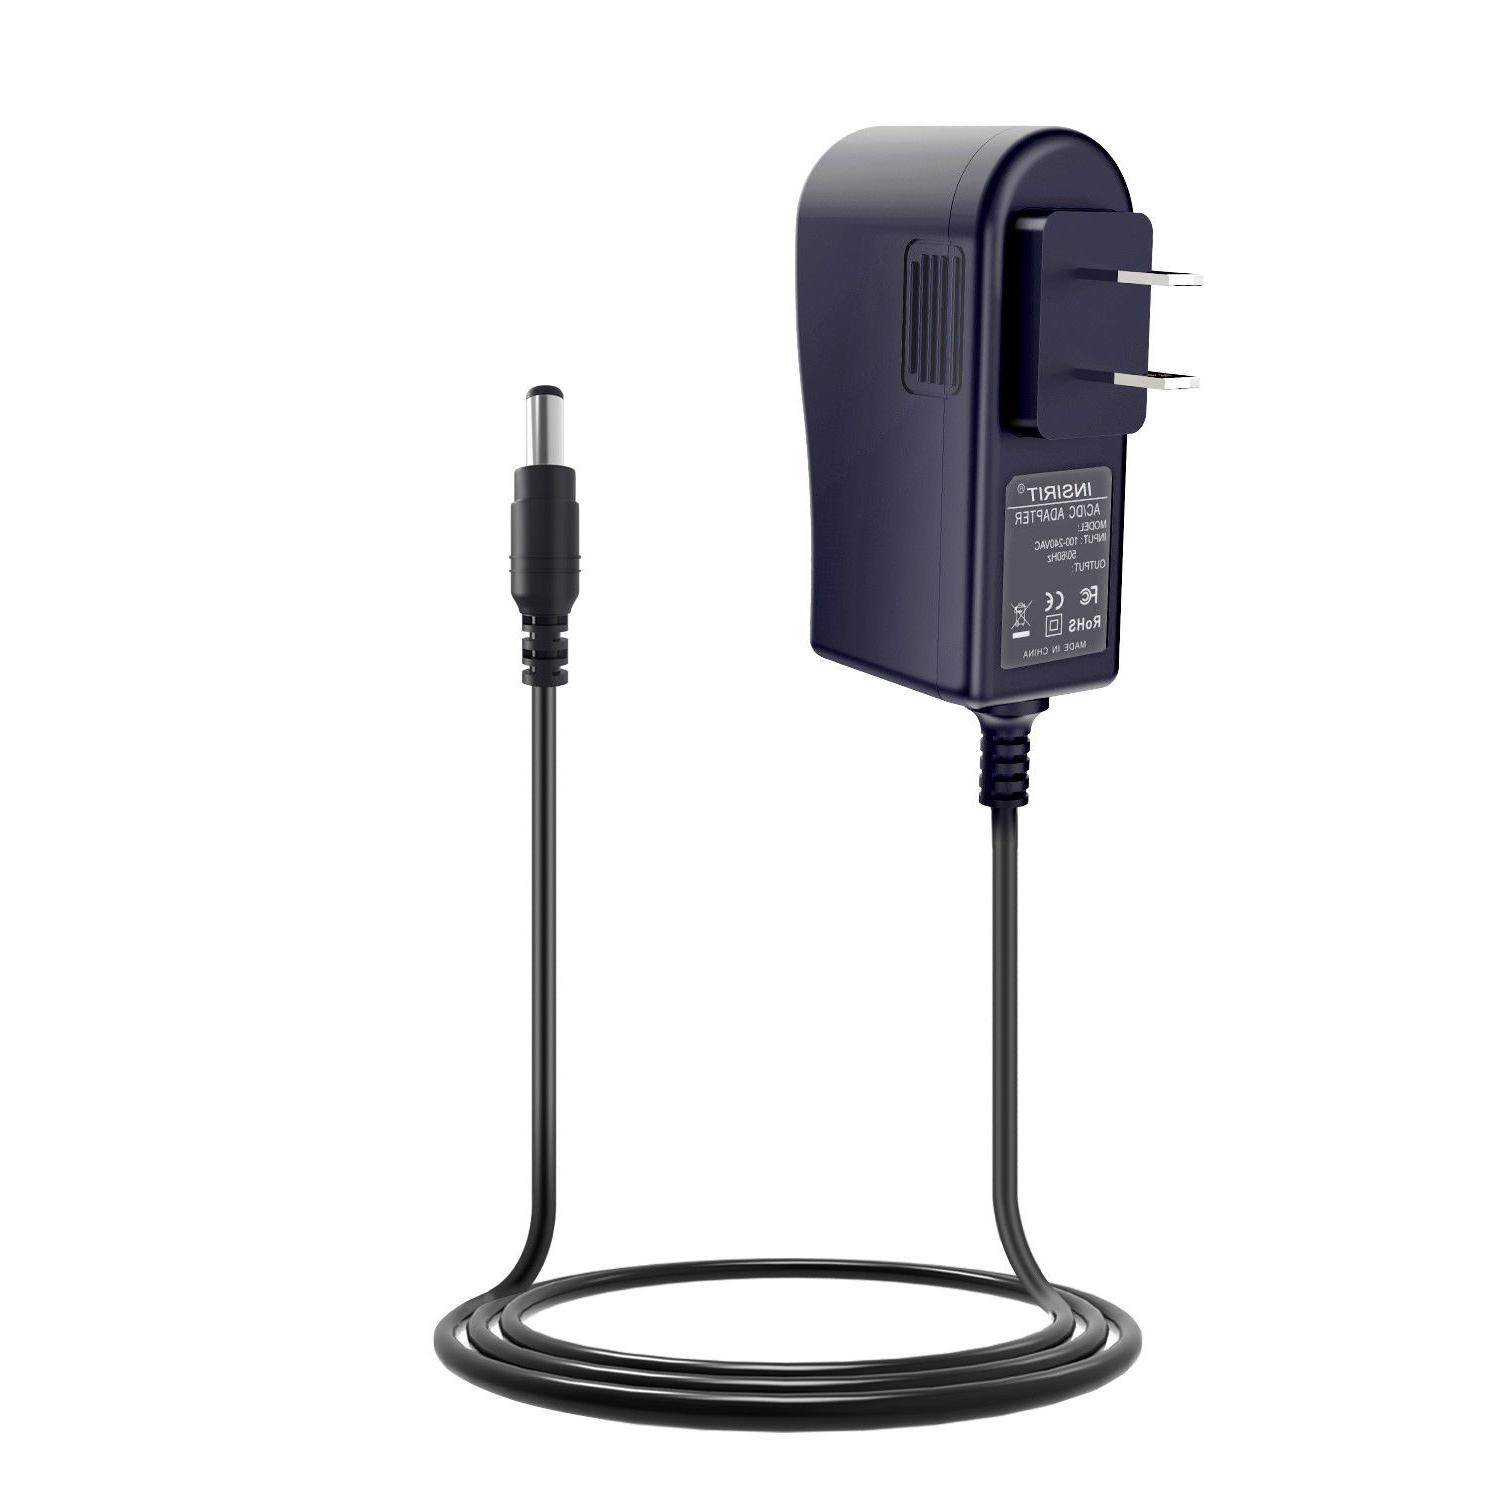 ac adapter for nordictrack e5 si elliptical